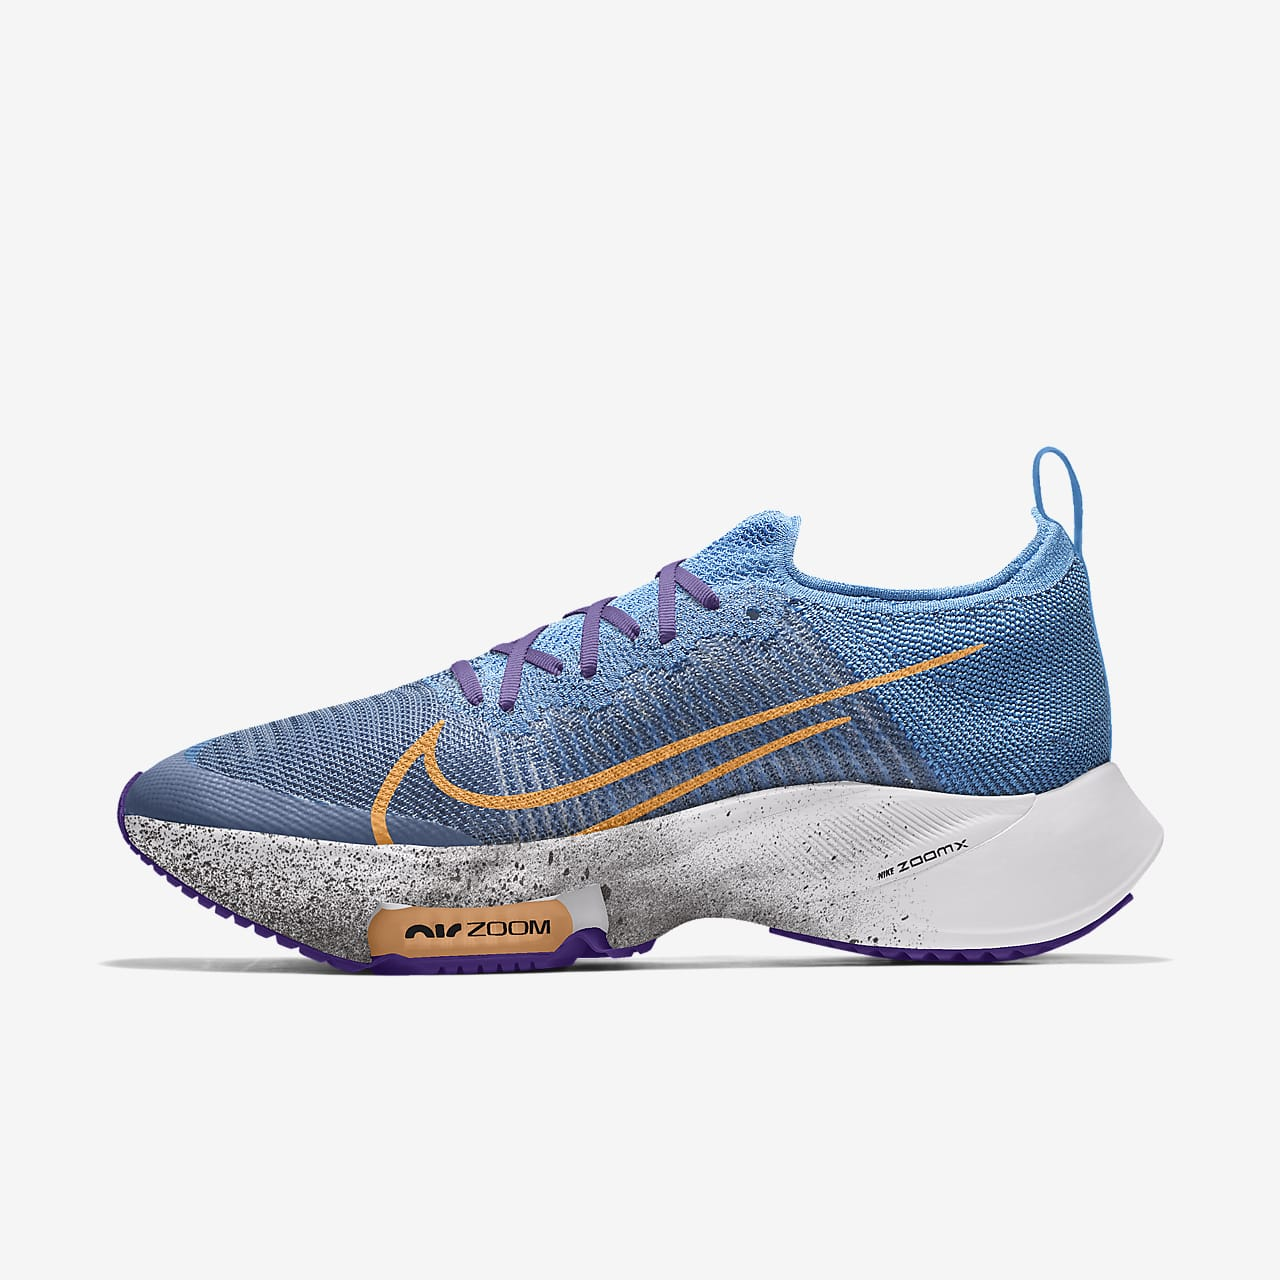 Nike Air Zoom Tempo Next% Flyknit By You Custom Running Shoe